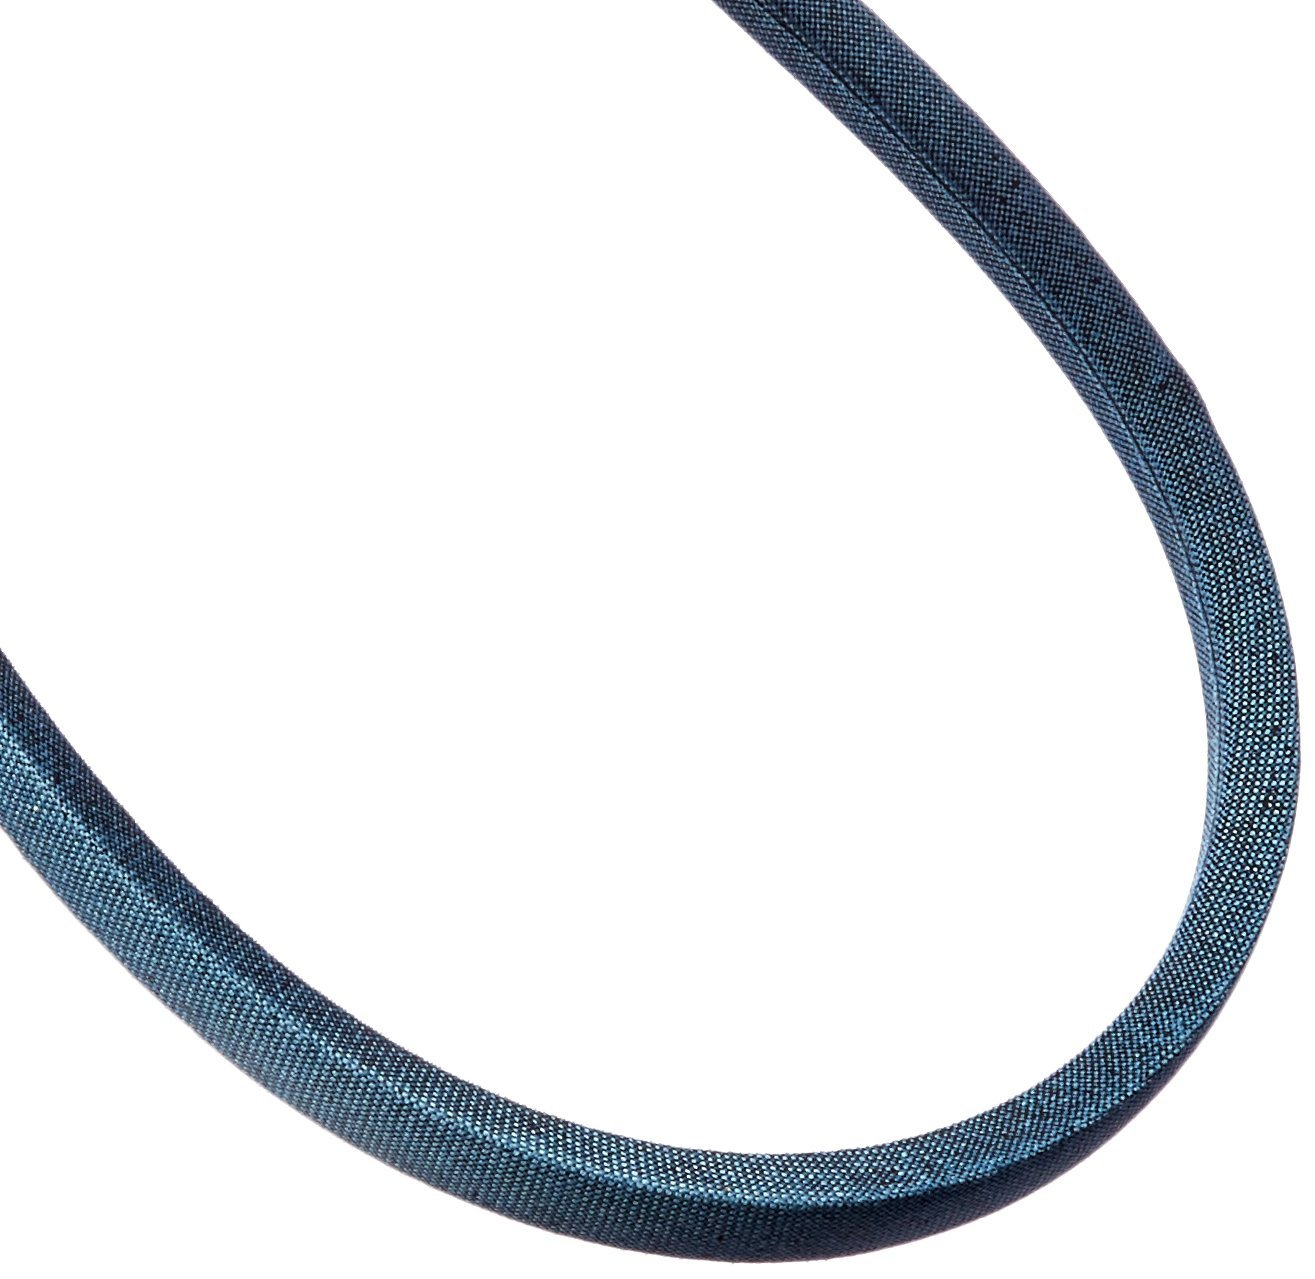 Jason Industrial MXV4-500 Super Duty Lawn and Garden Belt Synthetic Rubber 0.5 Wide 0.31 Thick 50.0 Long